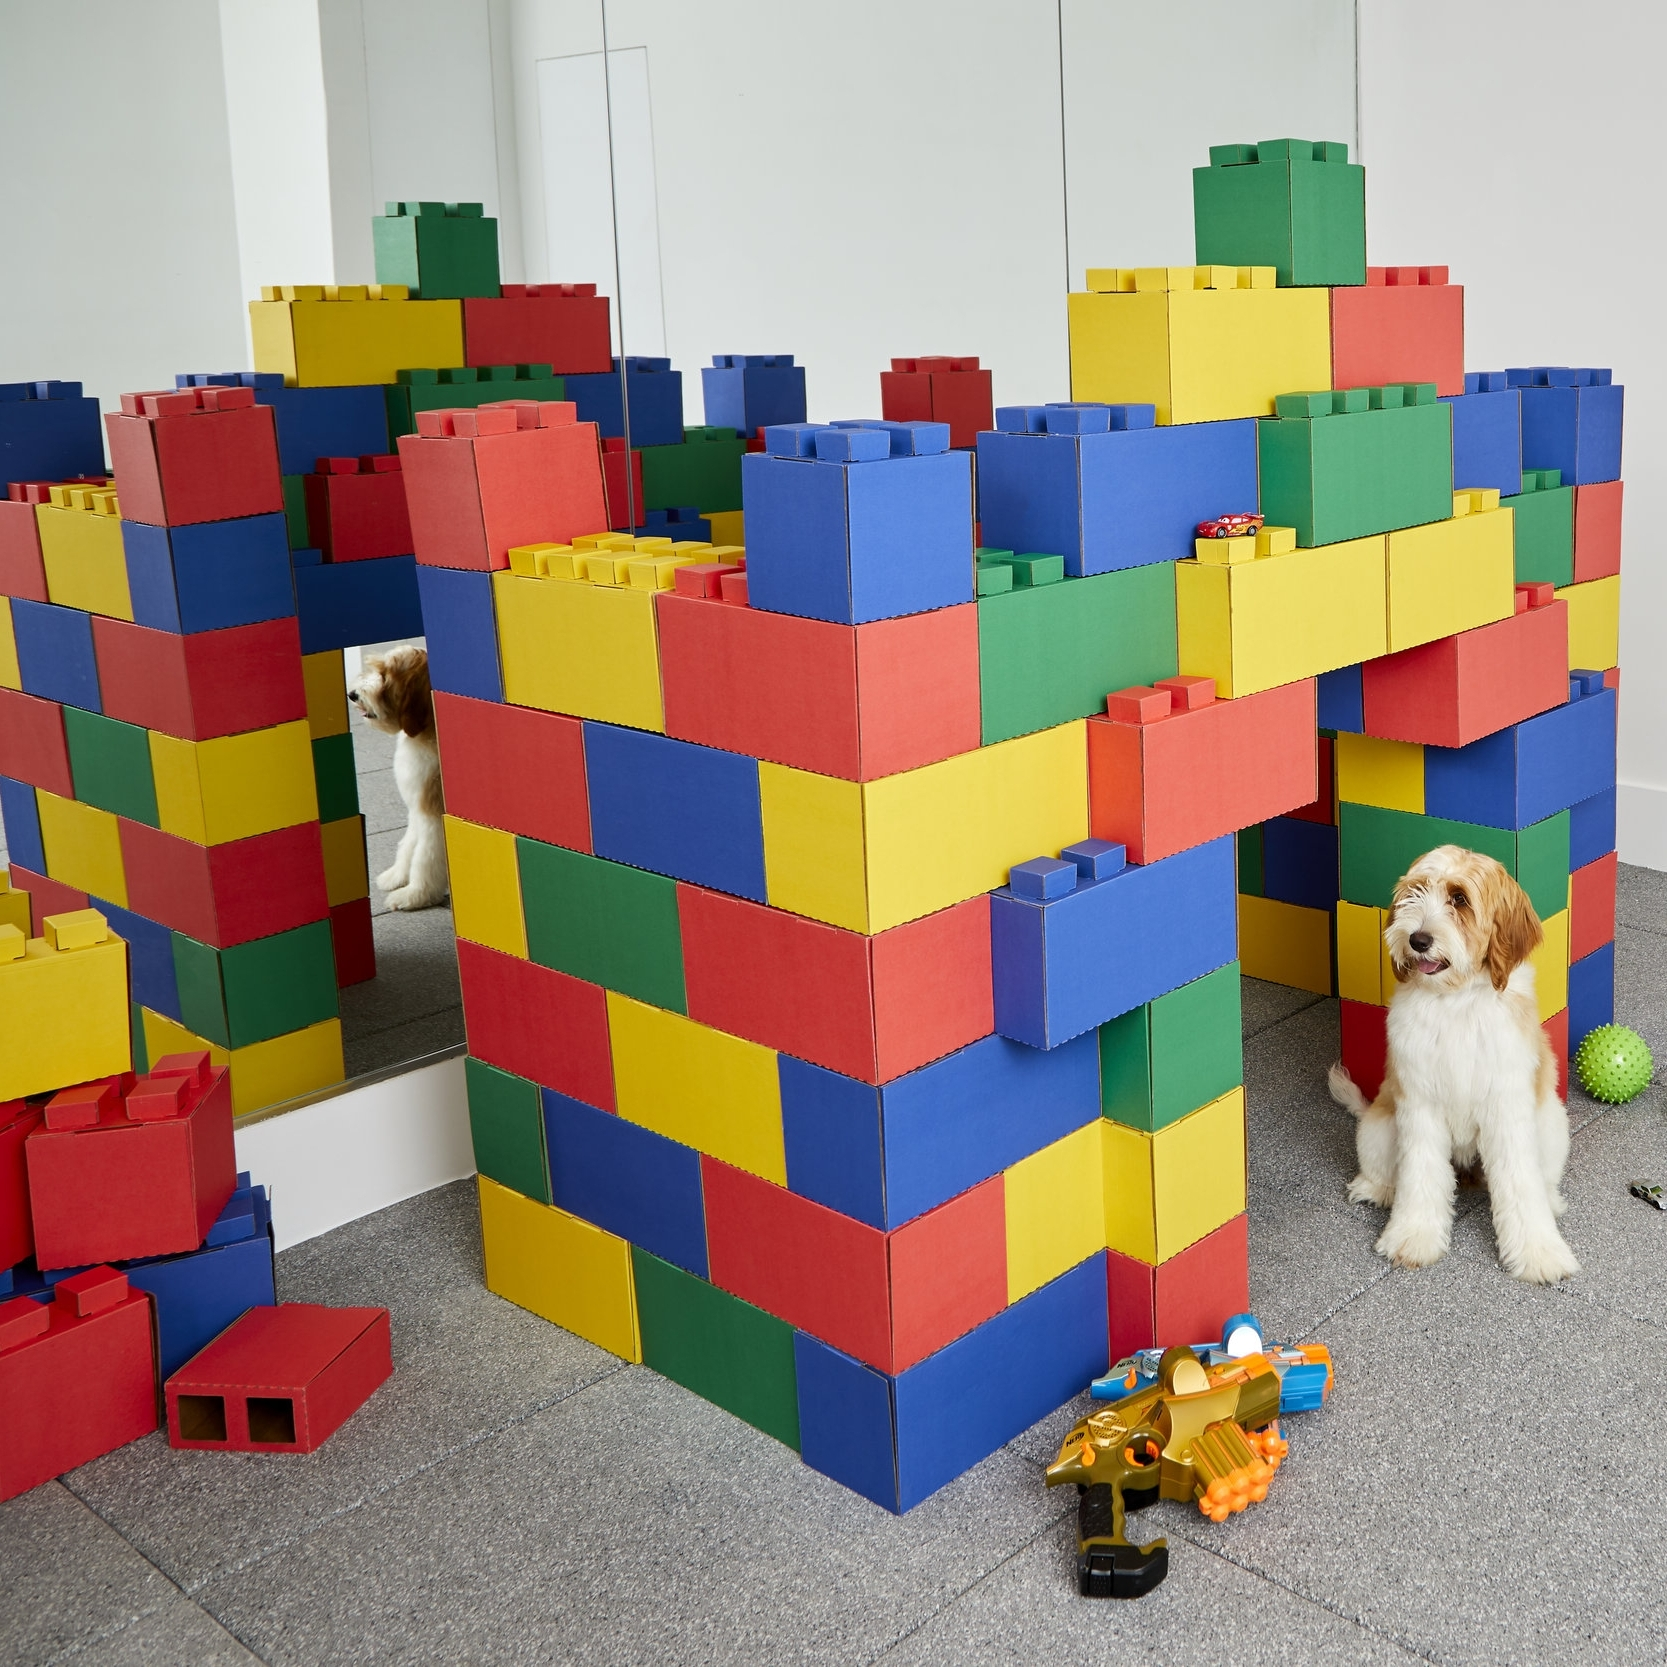 Simply stack blocks and alternative sizes, colors, and the configuration of the blocks to build nearly anything.